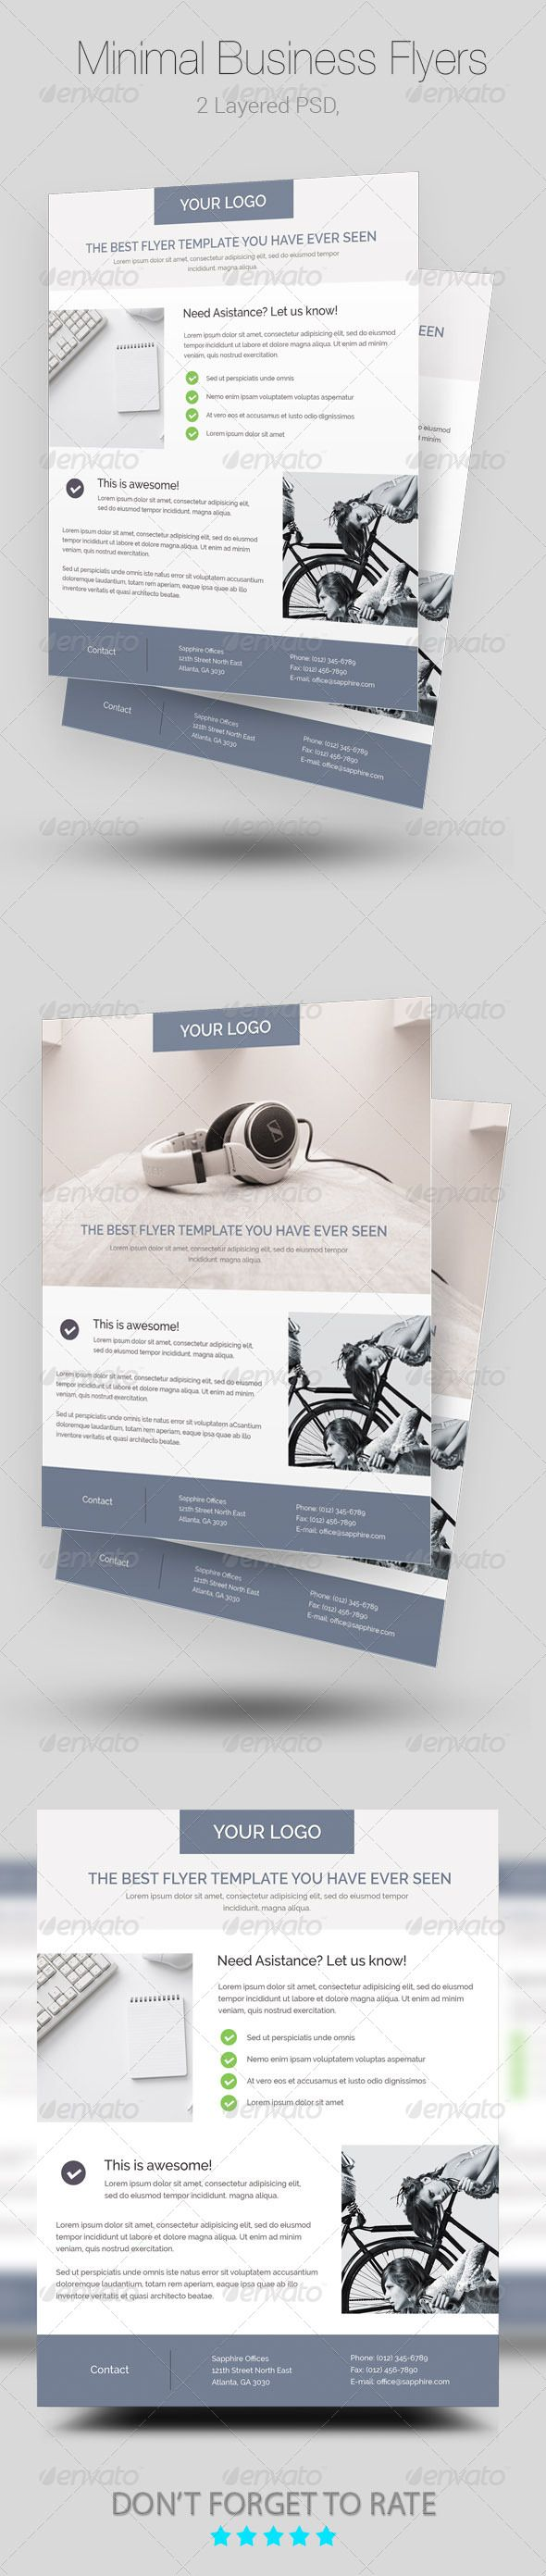 Minimal Business Flyer/Poster Templates  - Corporate Flyers